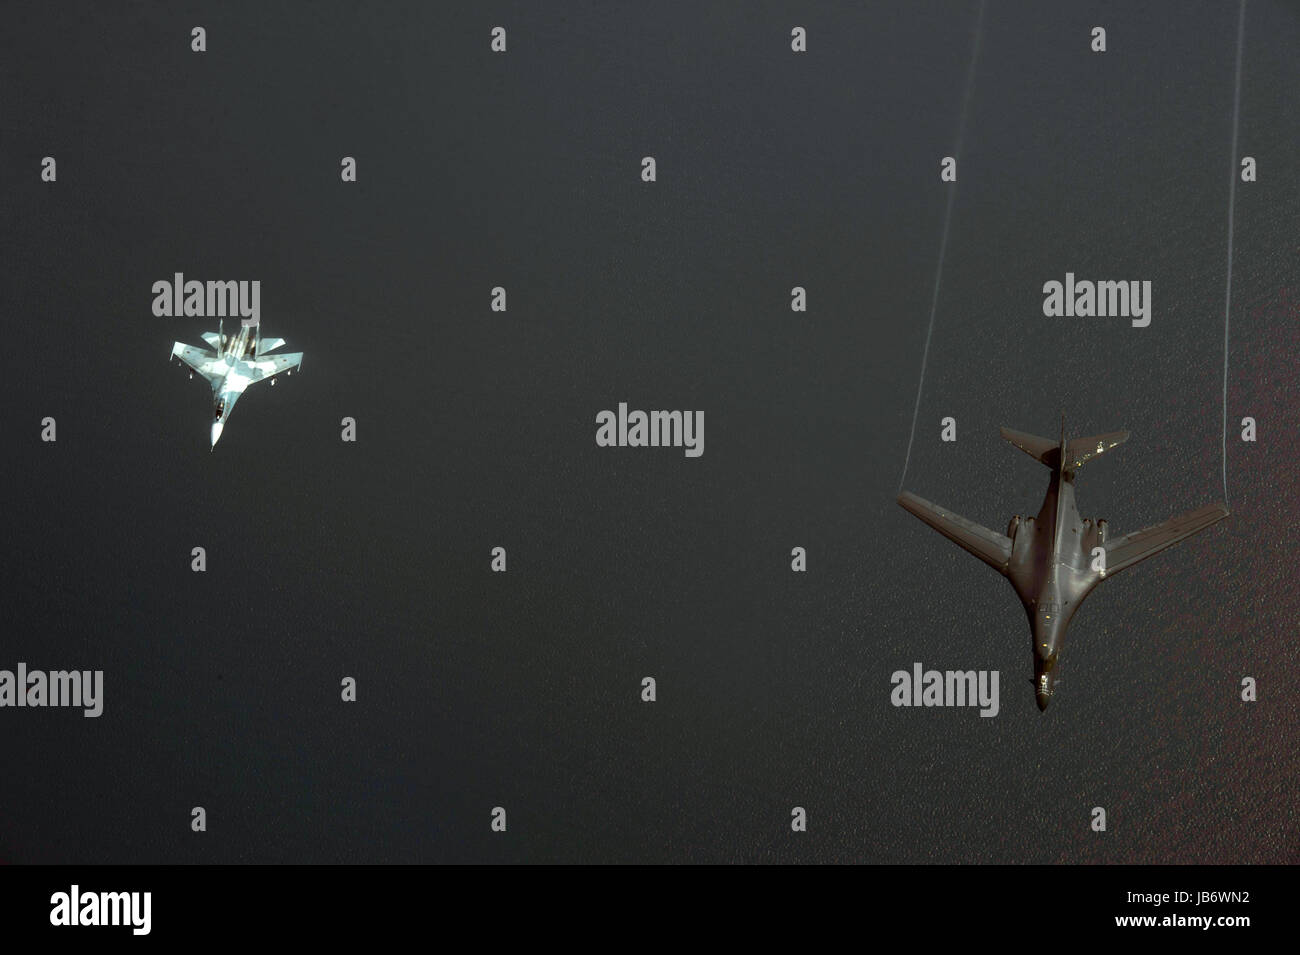 Baltic Sea. 09th June, 2017. A U.S. Air Force B-1B Lancer bomber, right, from the 28th Bomb Wing is intercepted - Stock Image